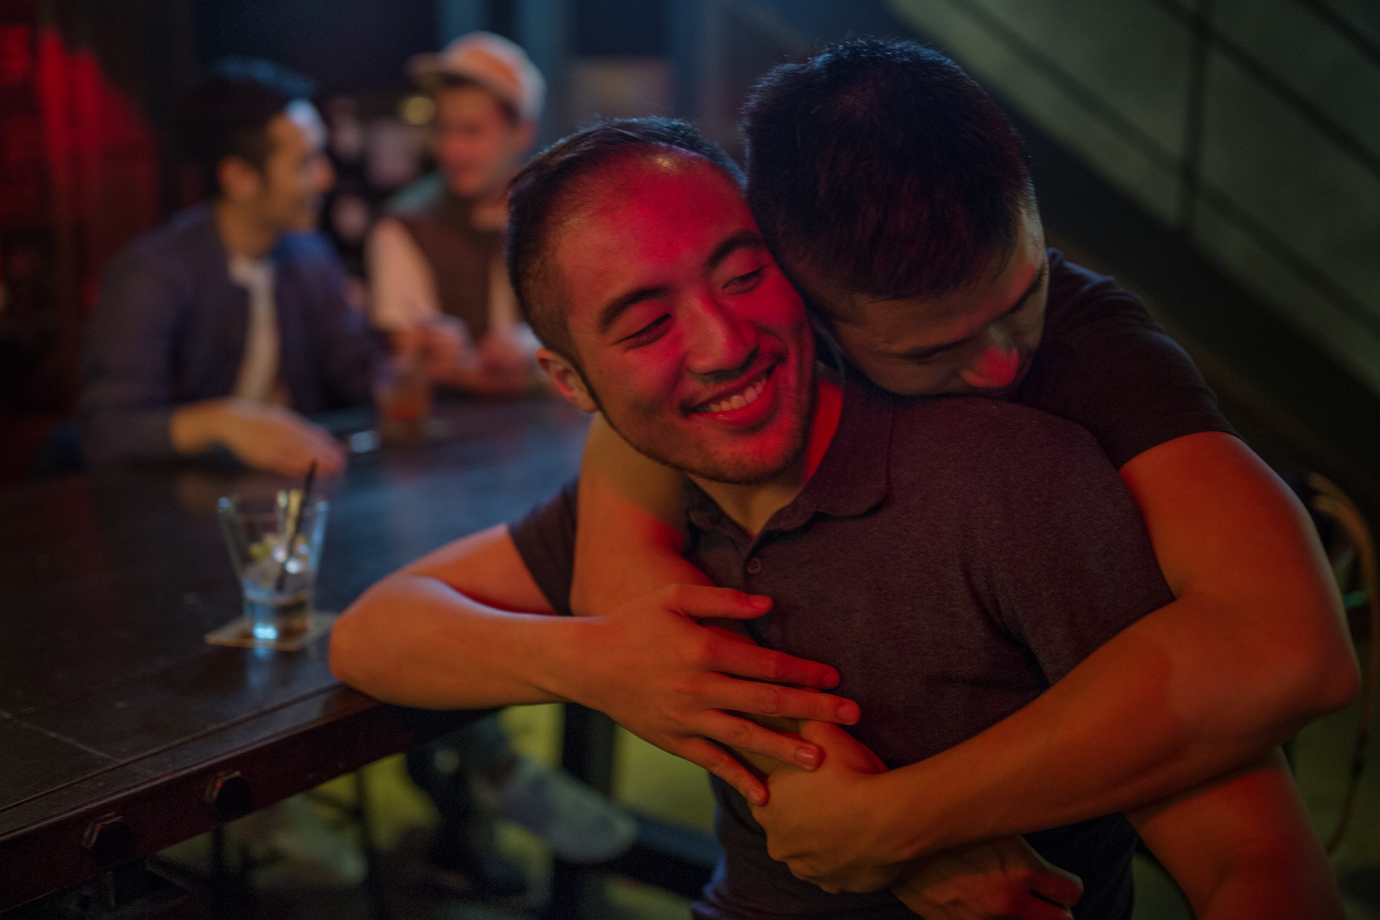 Gay couple in Taipei. Taiwan become the first Asian country to legalise same-sex marriage / Taiwan - 2016